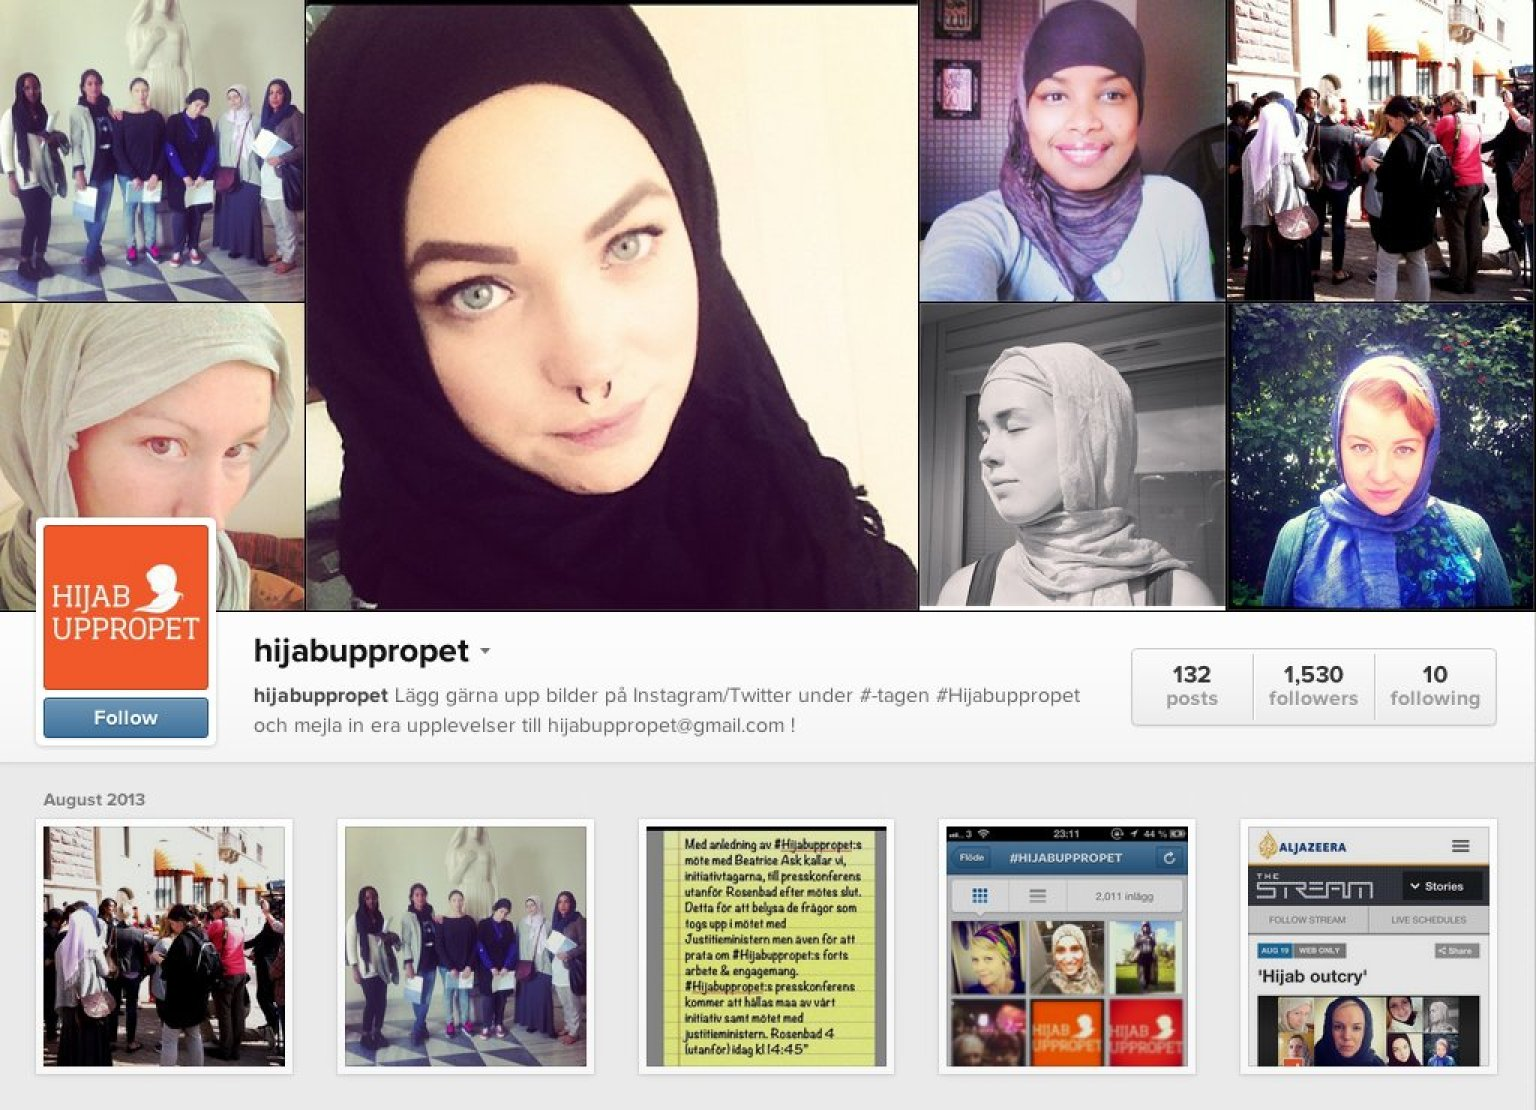 stockholm single muslim girls Woman and 5 lived in the city of stockholm and 2 respectively in the city of  gothenburg and  no one knows about the total number of muslims in today's  sweden and the  on the other hand, when muslim women and girls are  portrayed as.